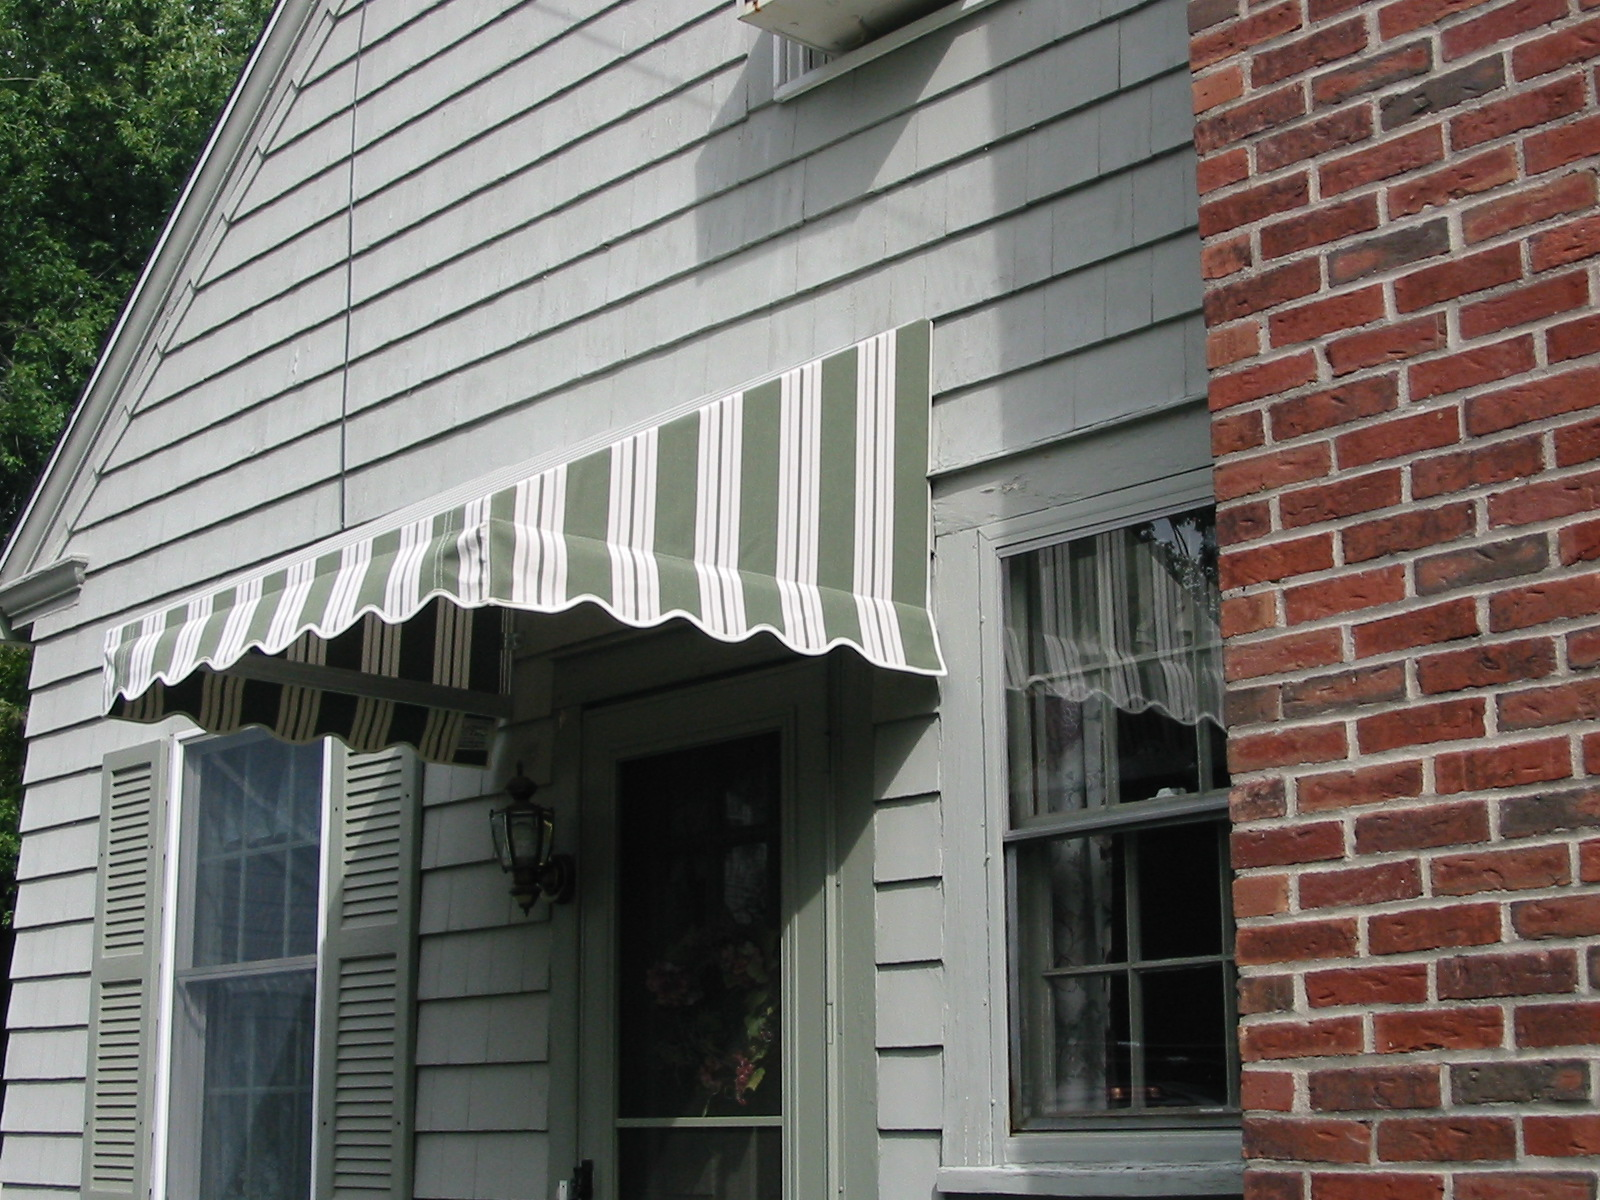 Tensile Window Awning